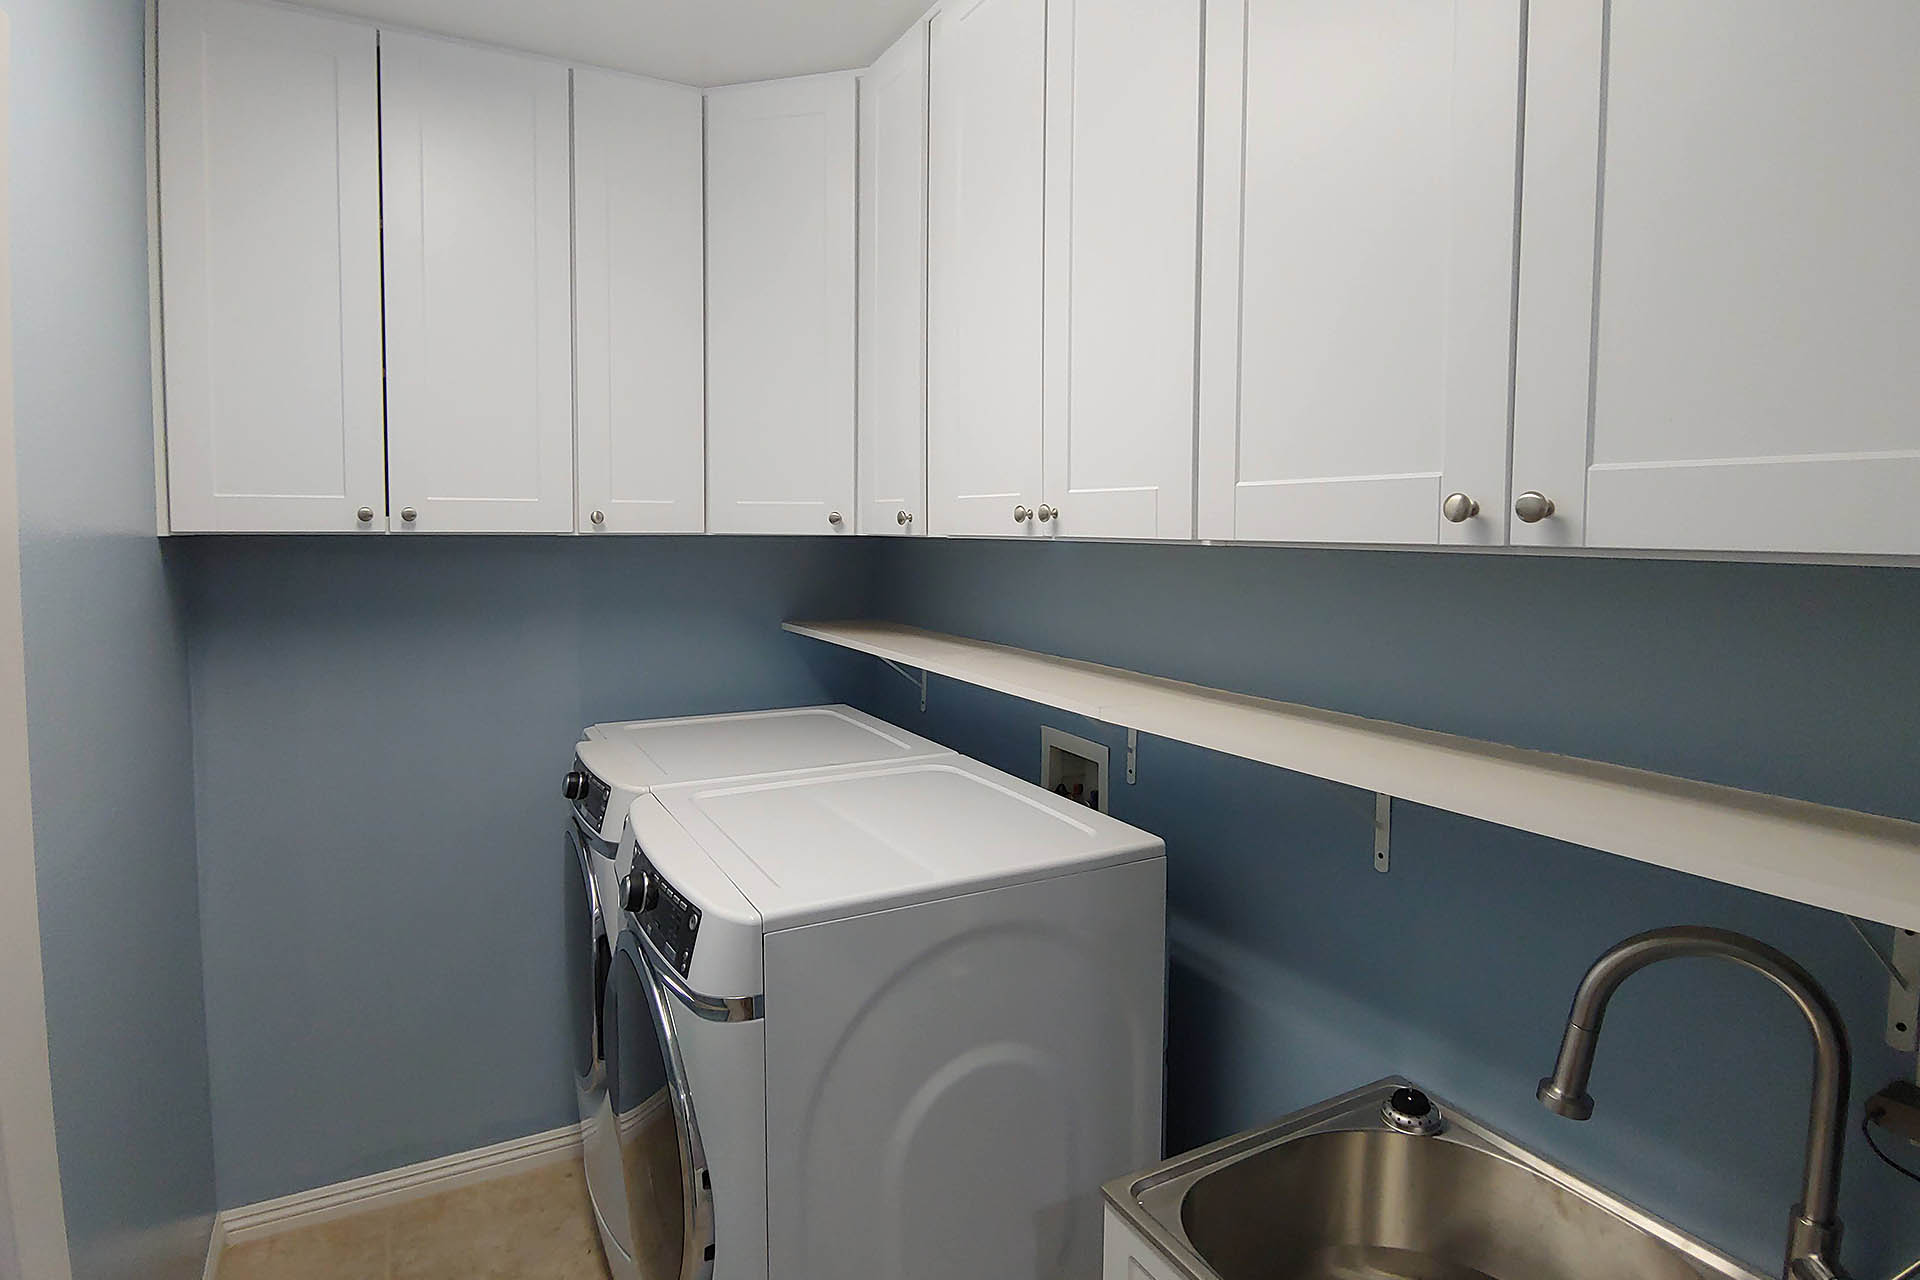 View Upper Cabinets & Shelving Installation